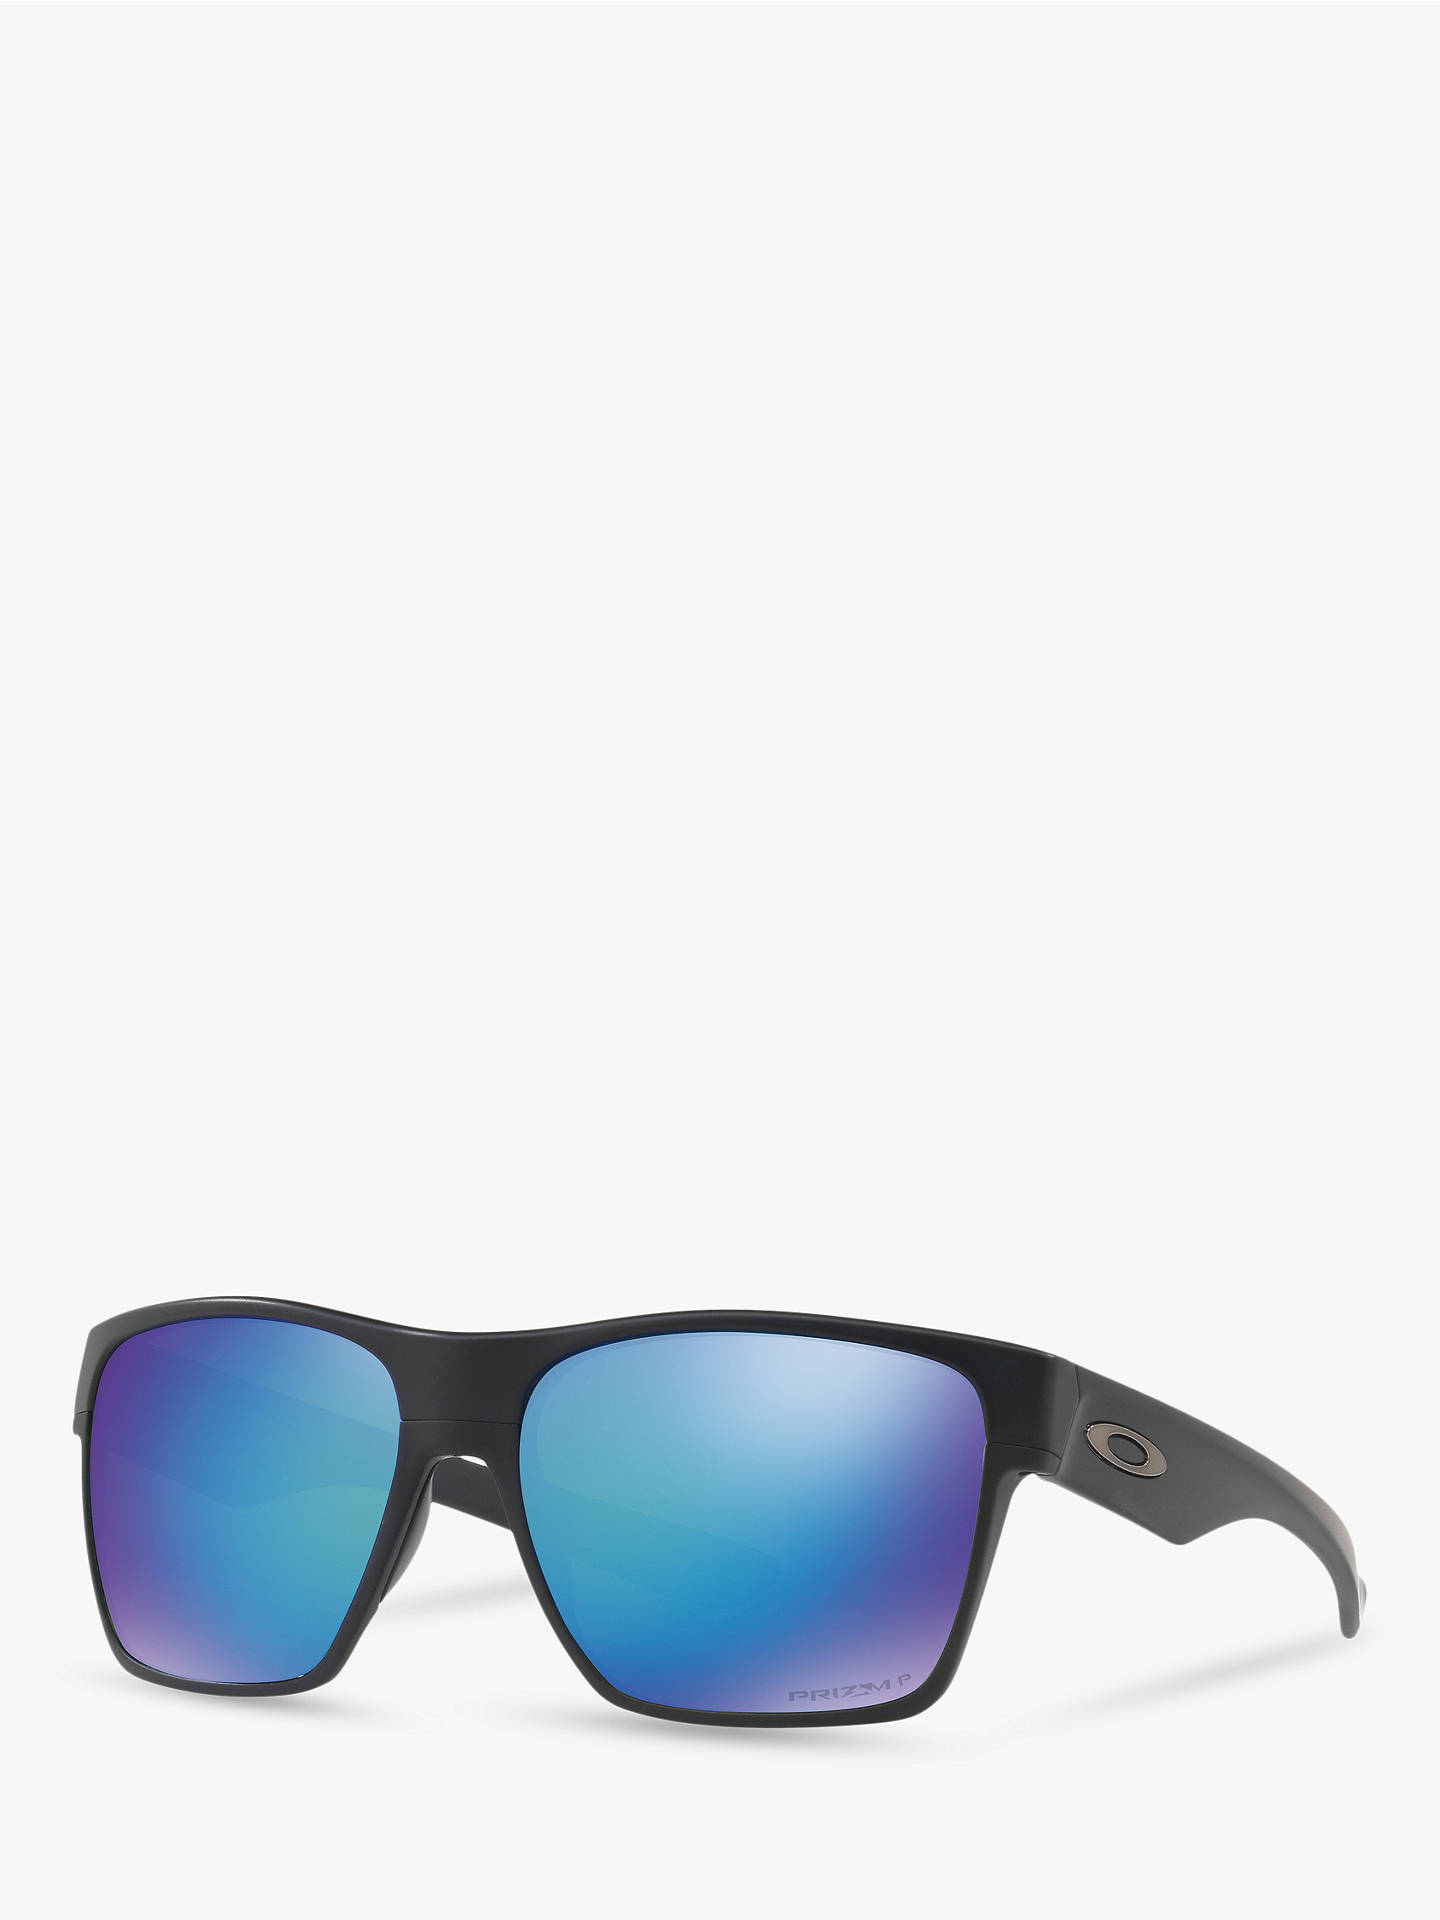 a28b085eadb Oakley OO9350 Two Face XL Prizm Polarised Square Sunglasses at John ...